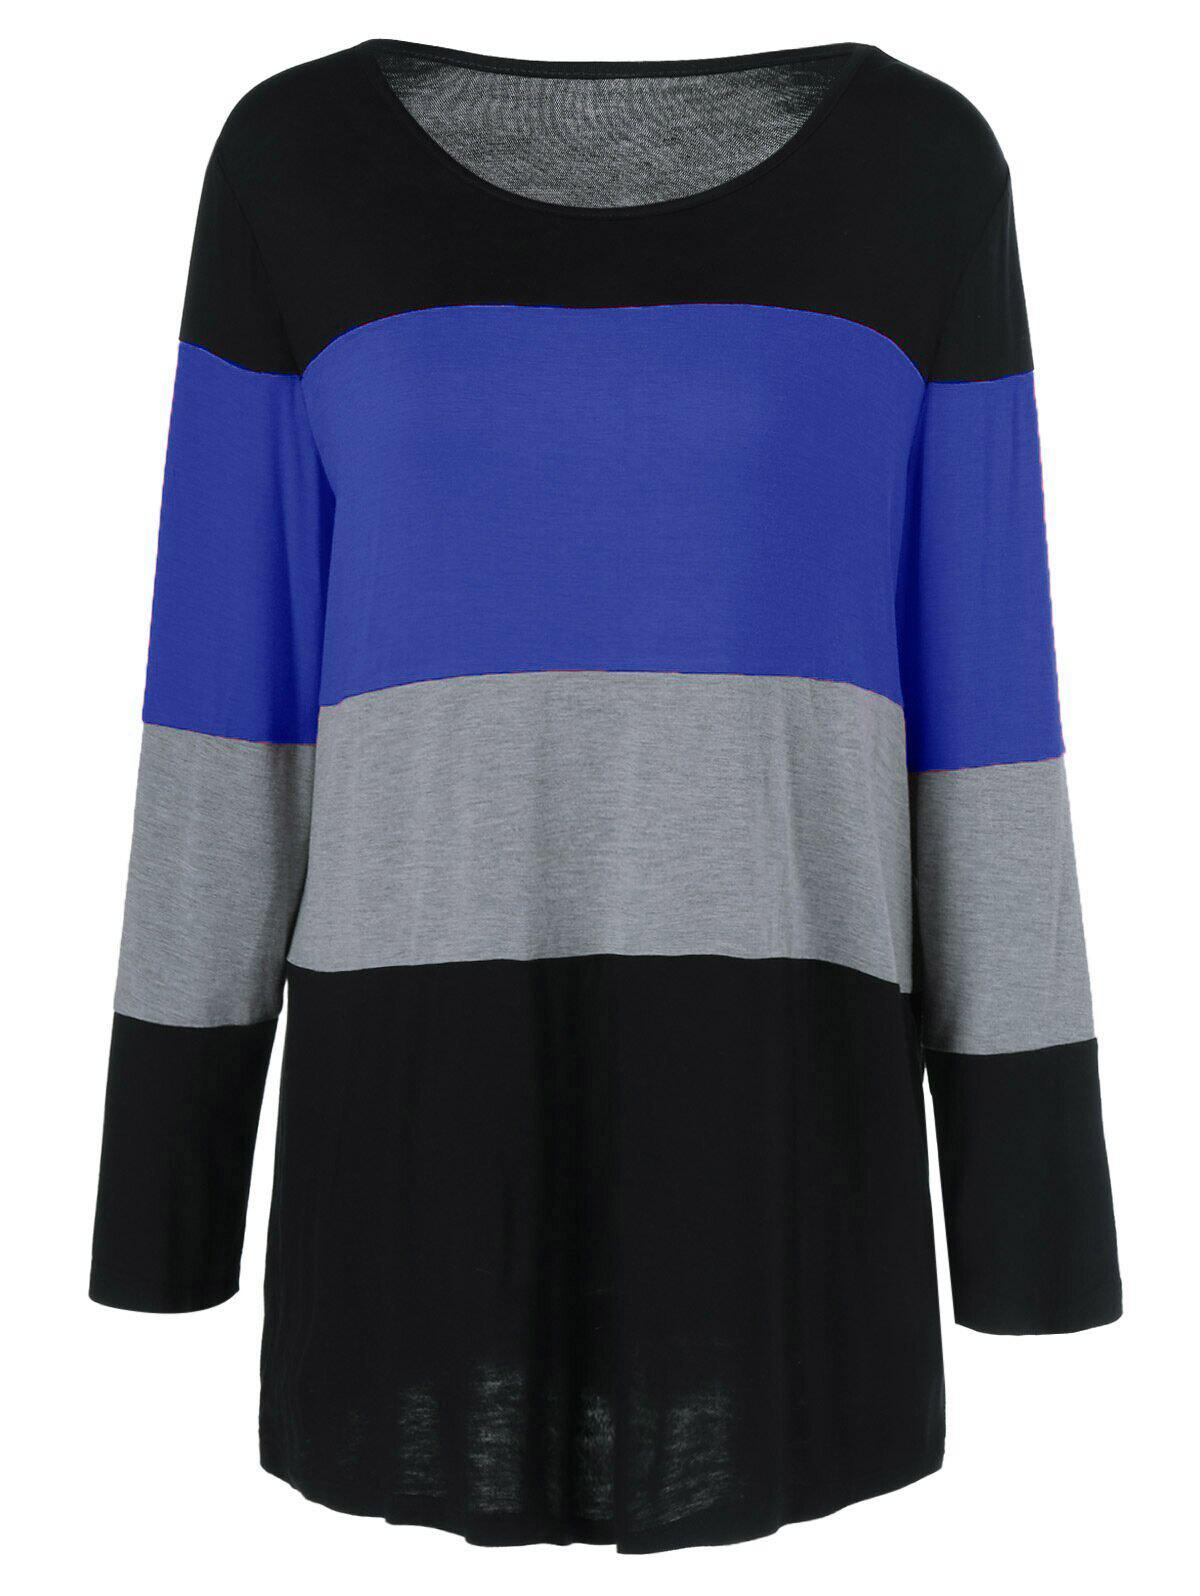 Plus Size Colorful Striped Comfy T-ShirtWOMEN<br><br>Size: 2XL; Color: BLUE; Material: Polyester,Spandex; Shirt Length: Long; Sleeve Length: Full; Collar: Scoop Neck; Style: Casual; Season: Fall,Spring; Pattern Type: Striped; Weight: 0.313kg; Package Contents: 1 x T-Shirt;